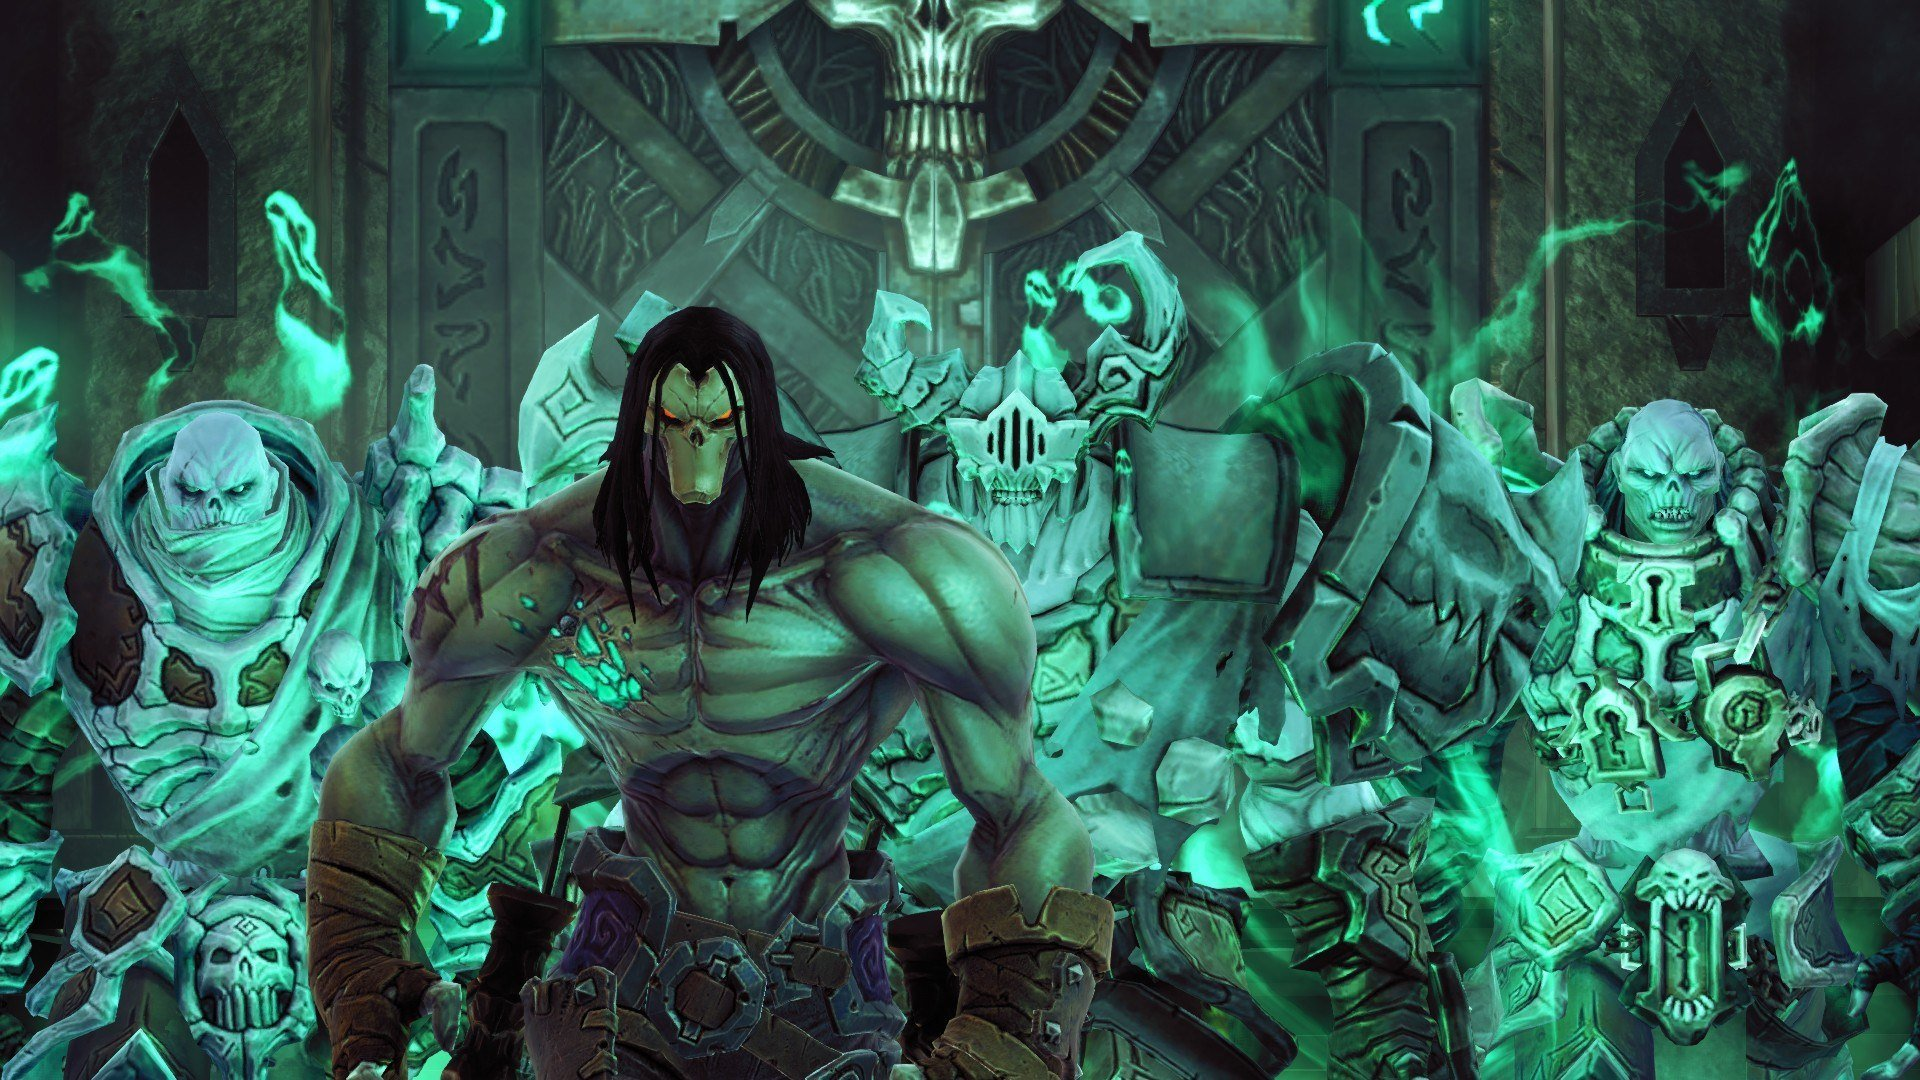 Darksiders Ii Finally Got Its Xbox 4k Patch Nearly Half A Year Late